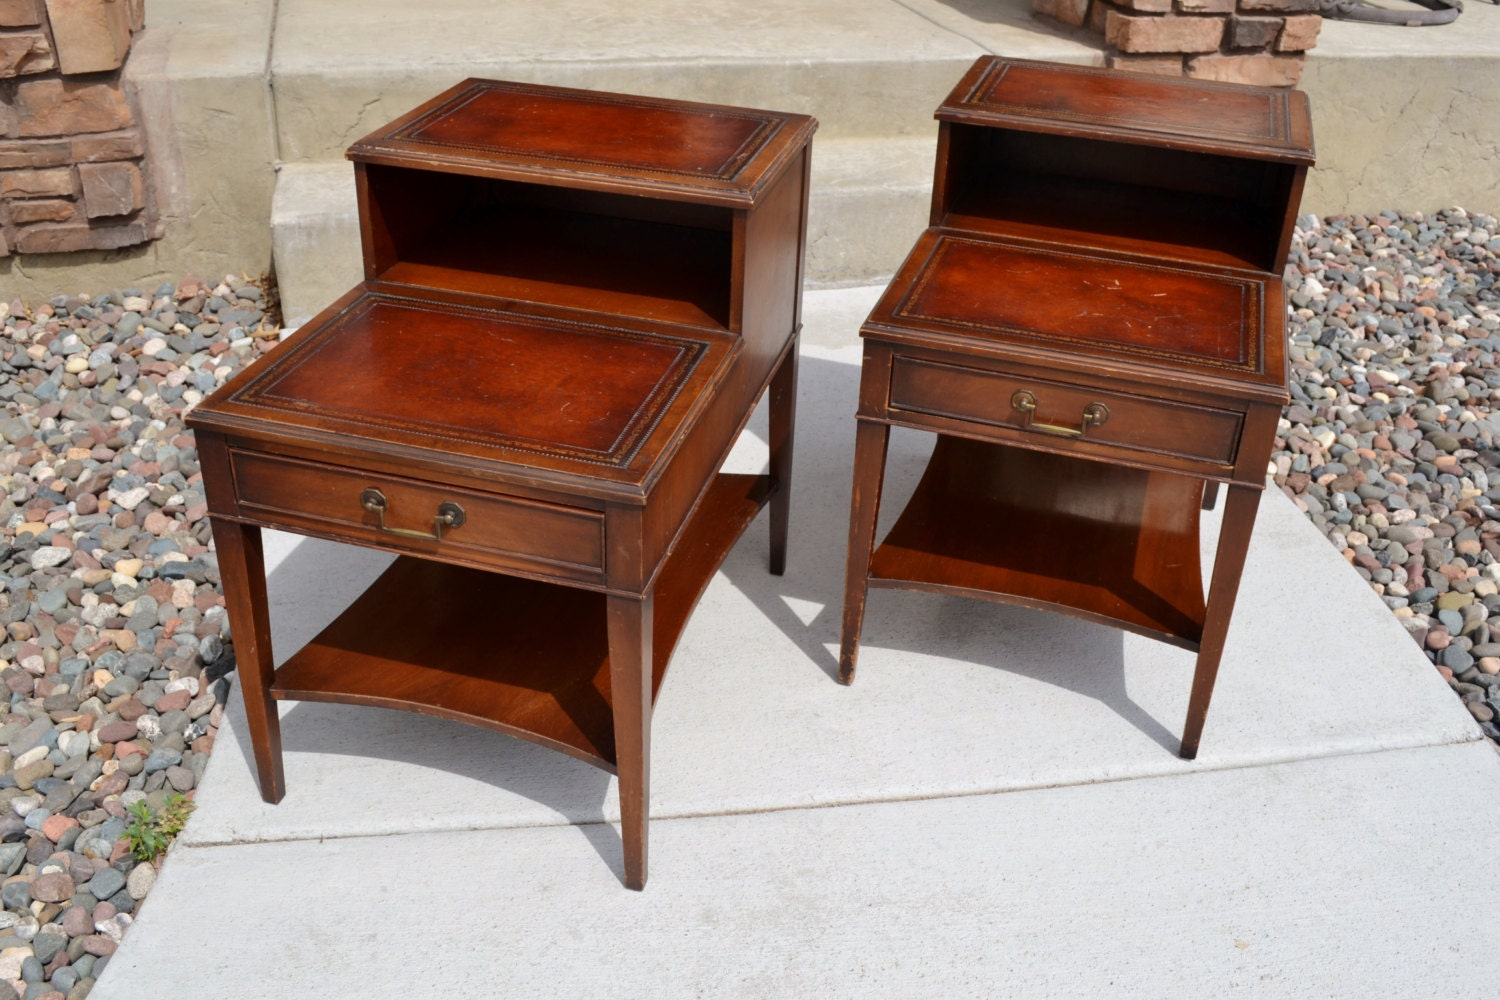 Antique End Tables Images: Pair Of Vintage Mahogany Leather Top Step End Tables By